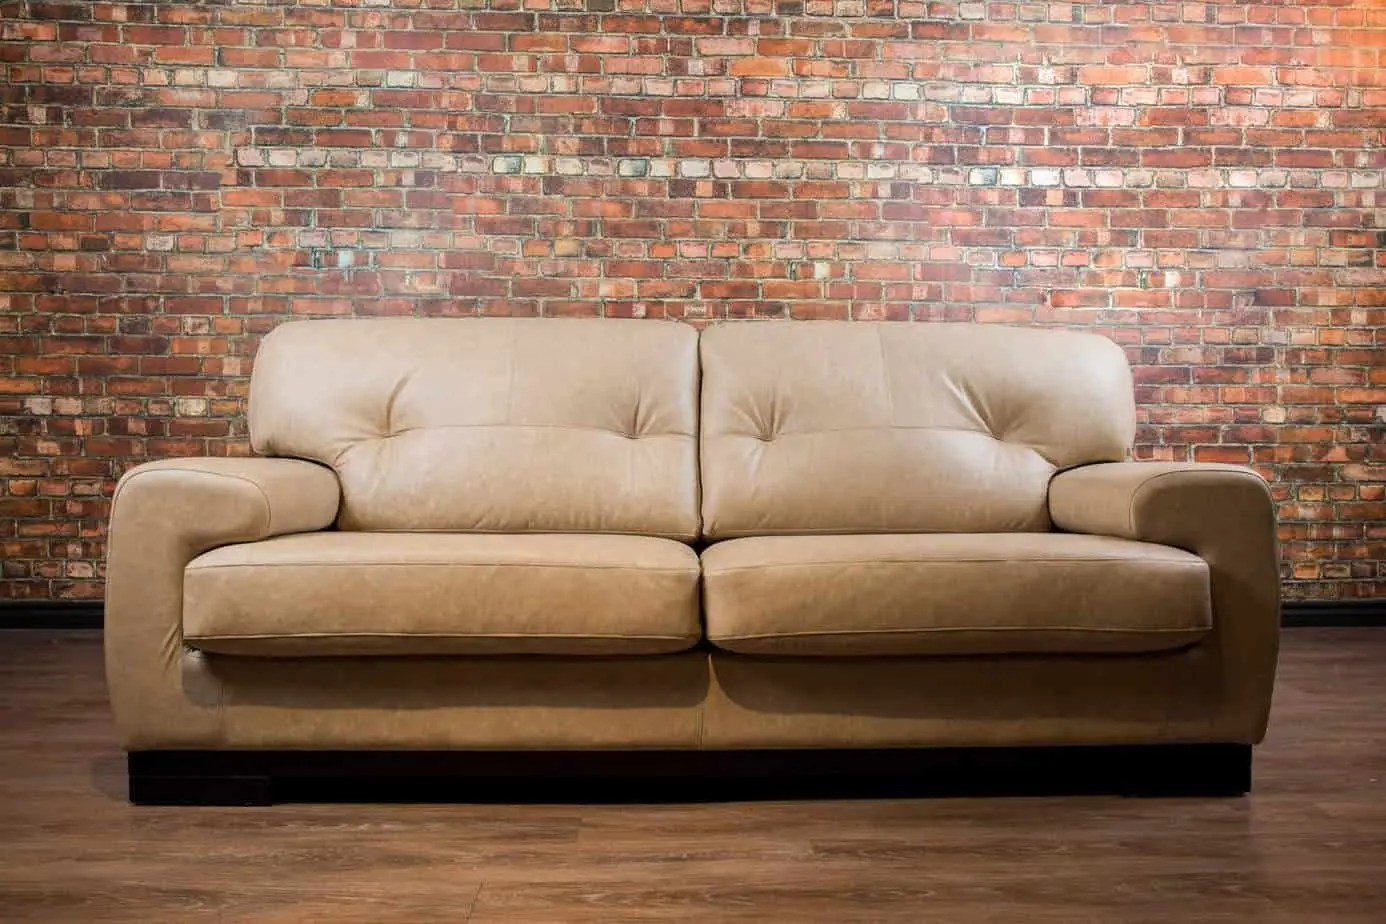 Leather Couch Canada The Nova Leather Sofa Canada 39s Boss Leather Sofas And